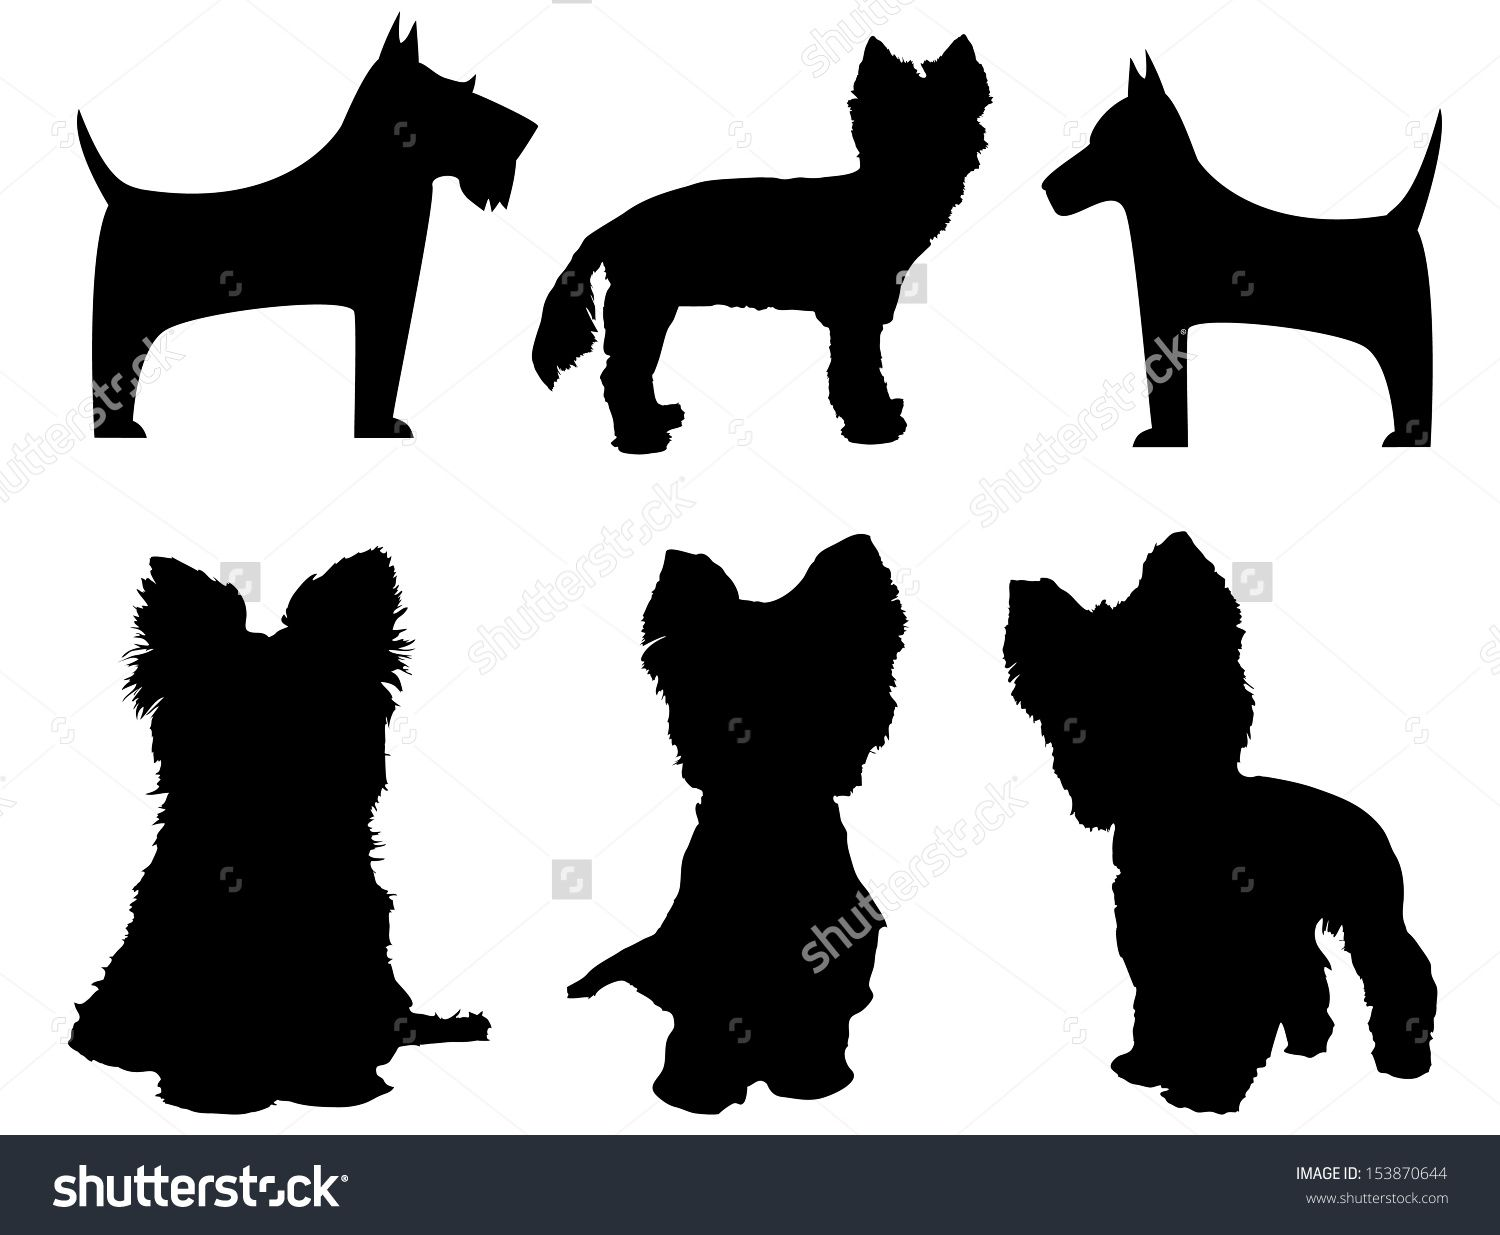 Small Dog Silhouettes (Yorkshire Terrier And Schnauzer) Stock ...